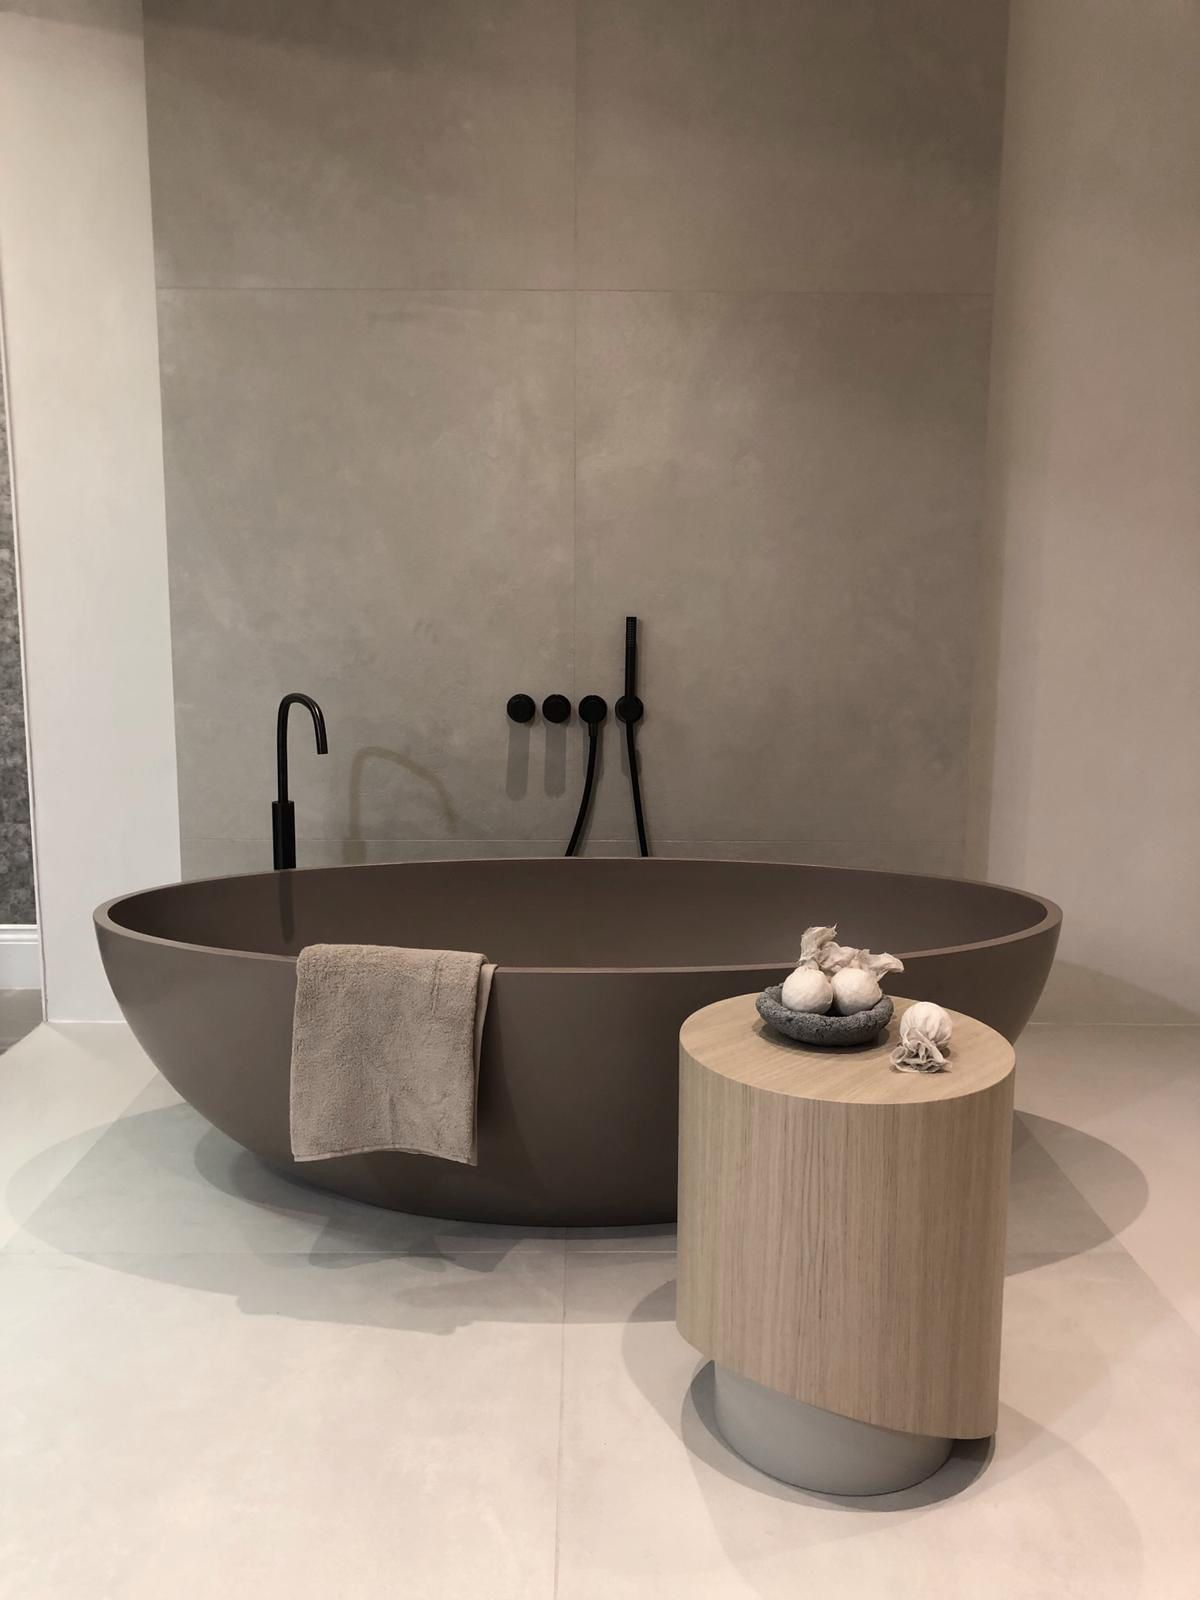 Modern Bathroom Design Bycocoon Bycocoon In 2020 Modern Bathroom Design Bathroom Design Luxury Bathroom Design